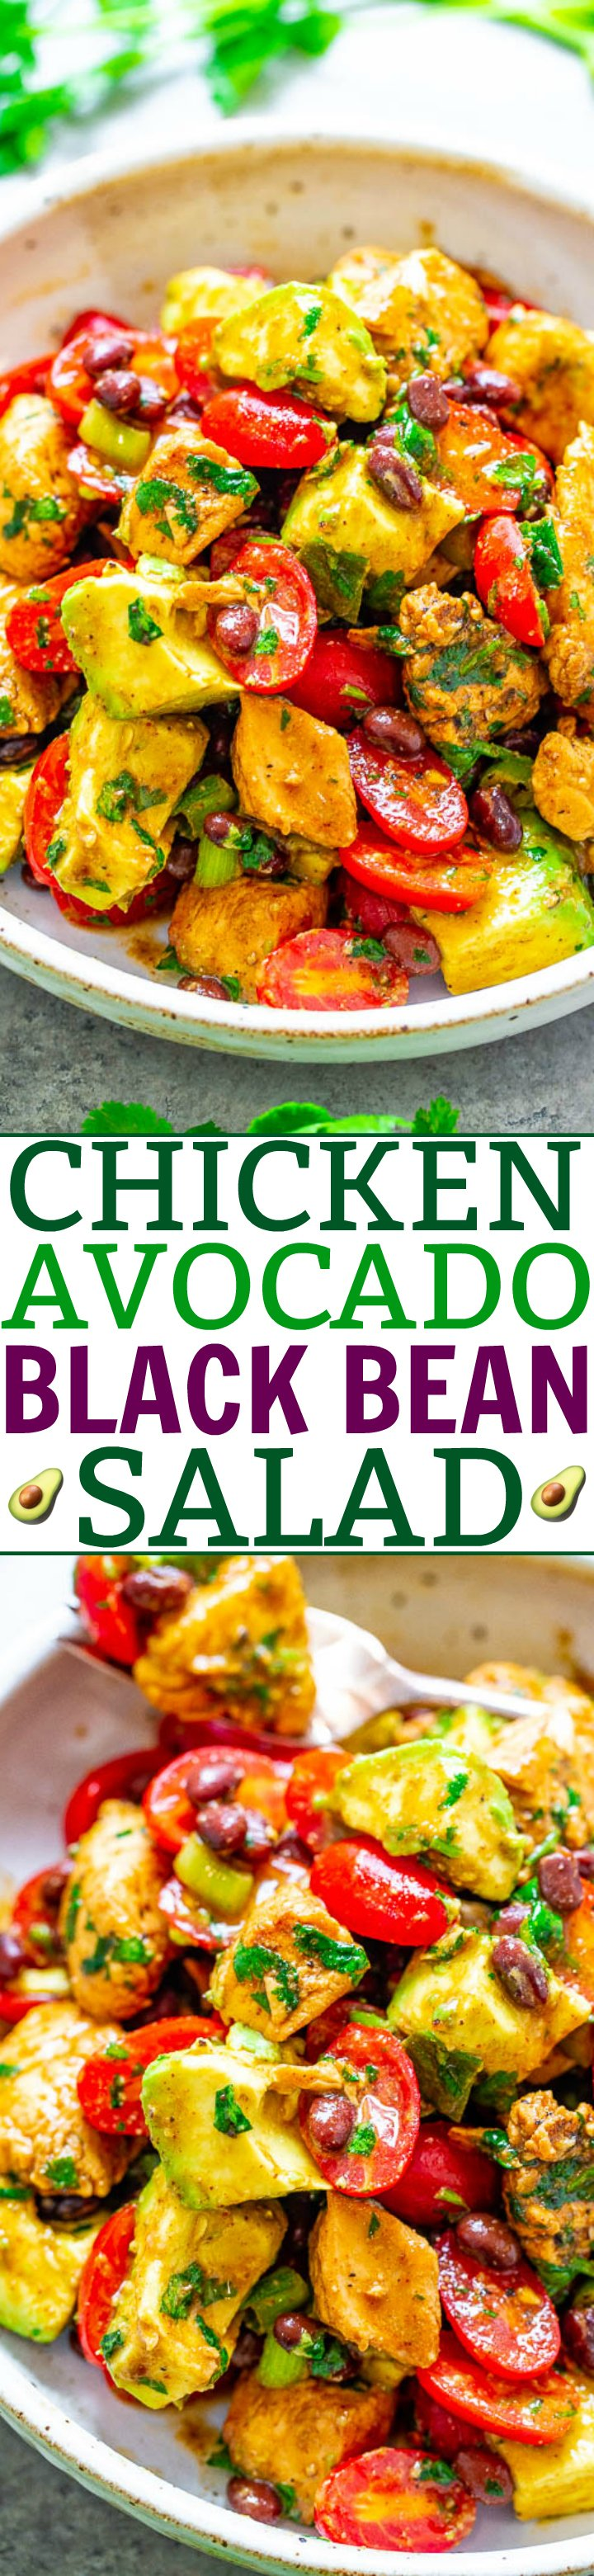 Chicken Avocado Black Bean Salad – A Mexican-inspired salad with tender chicken, black beans, creamy avocado, juicy tomatoes, cilantro, lime juice and more!! EASY, ready in 20 minutes, HEALTHY, and packed with fiesta FLAVORS galore!!